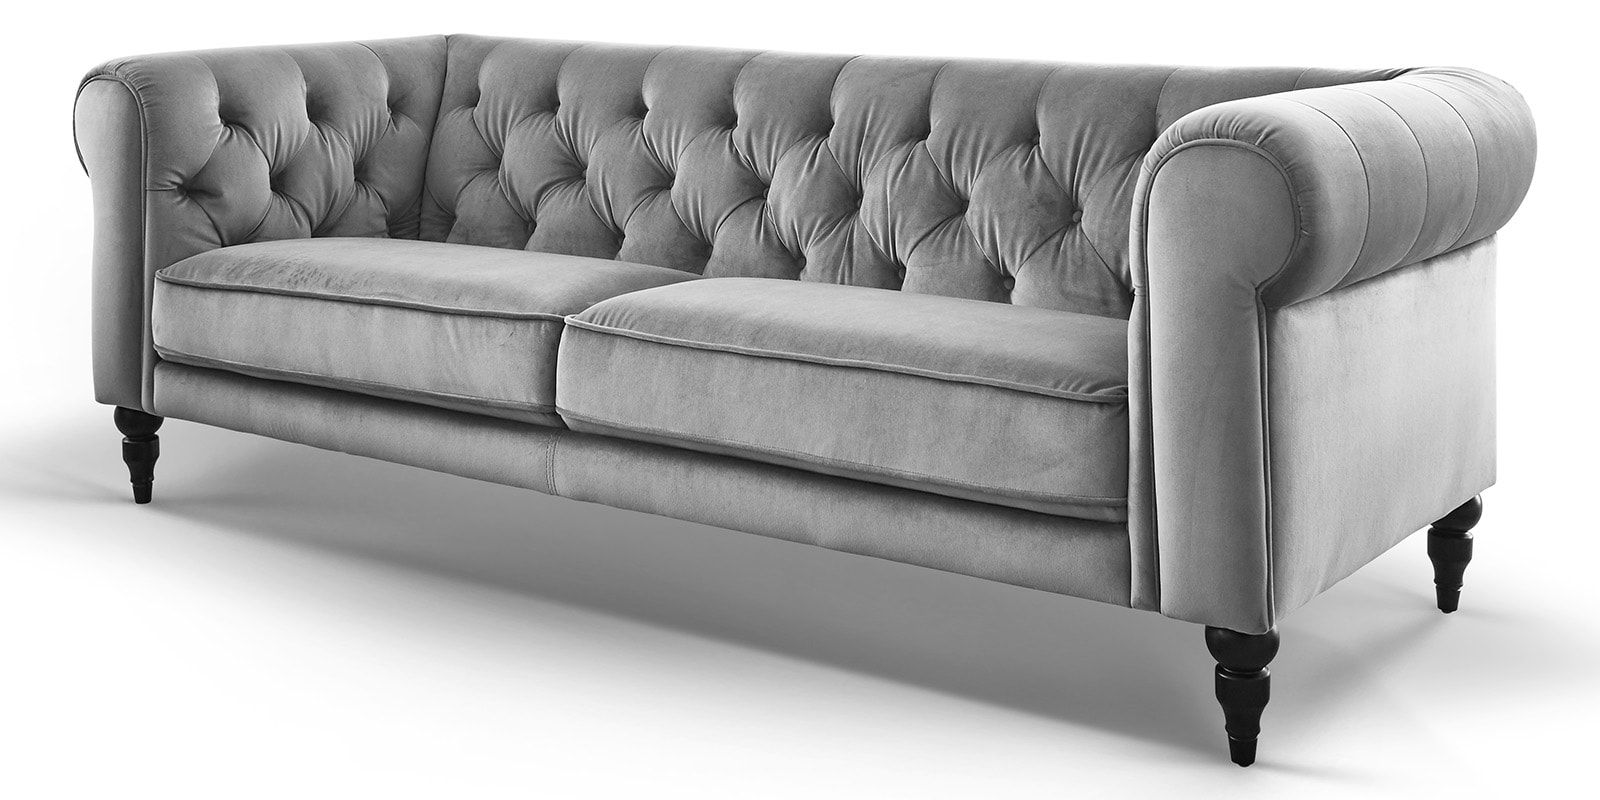 Samt Couch 3-sitzer Chesterfield Samt Hudson - Comfort2home ...